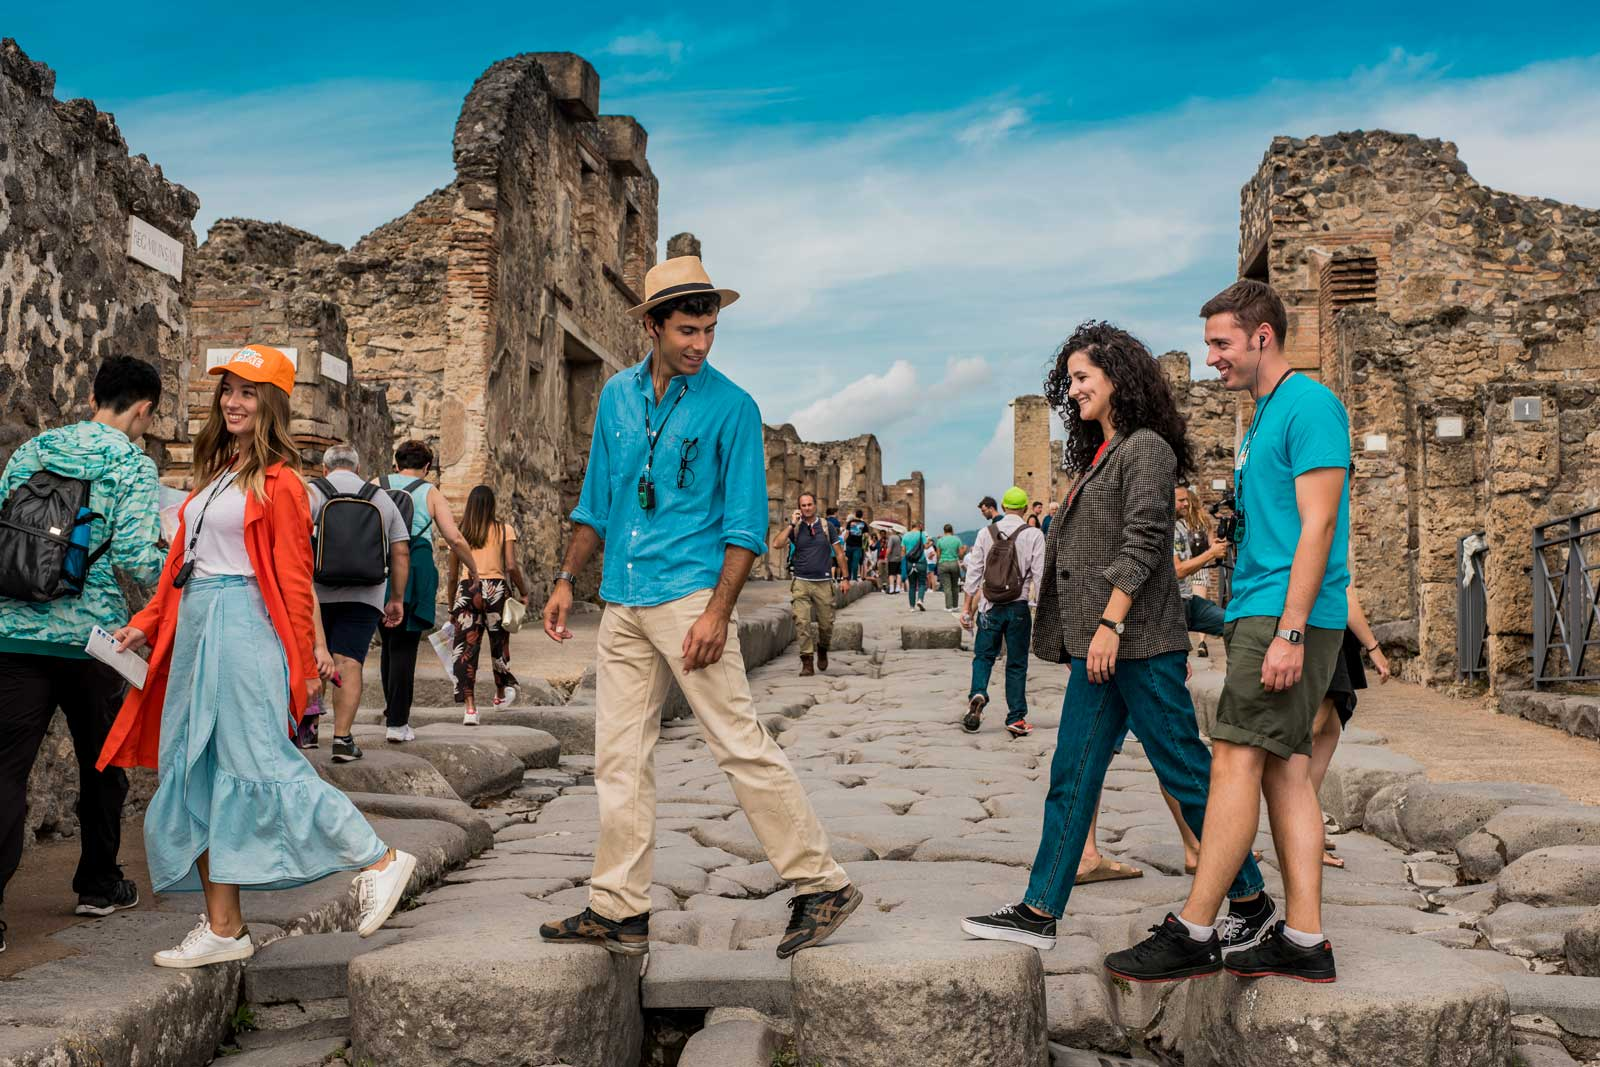 Round-Trip Shuttle bus service to Pompeii - Day trip from Rome and Pompeii guided tour